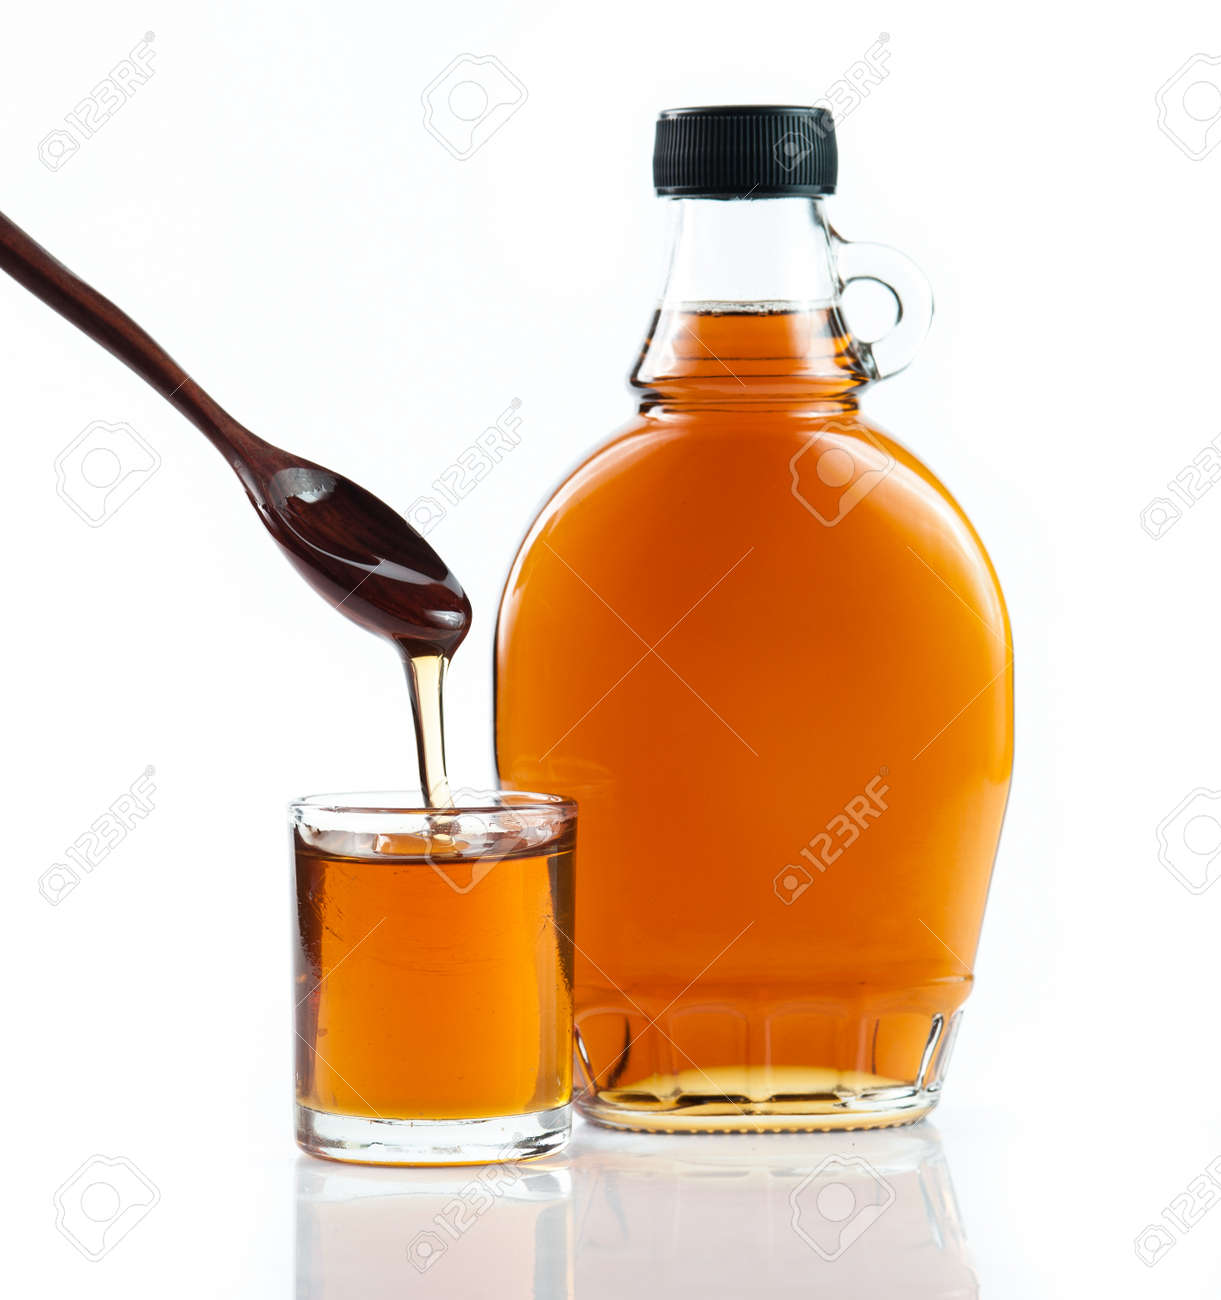 aab7dd1a7b6 maple syrup in glass bottle on white background Stock Photo - 48852605